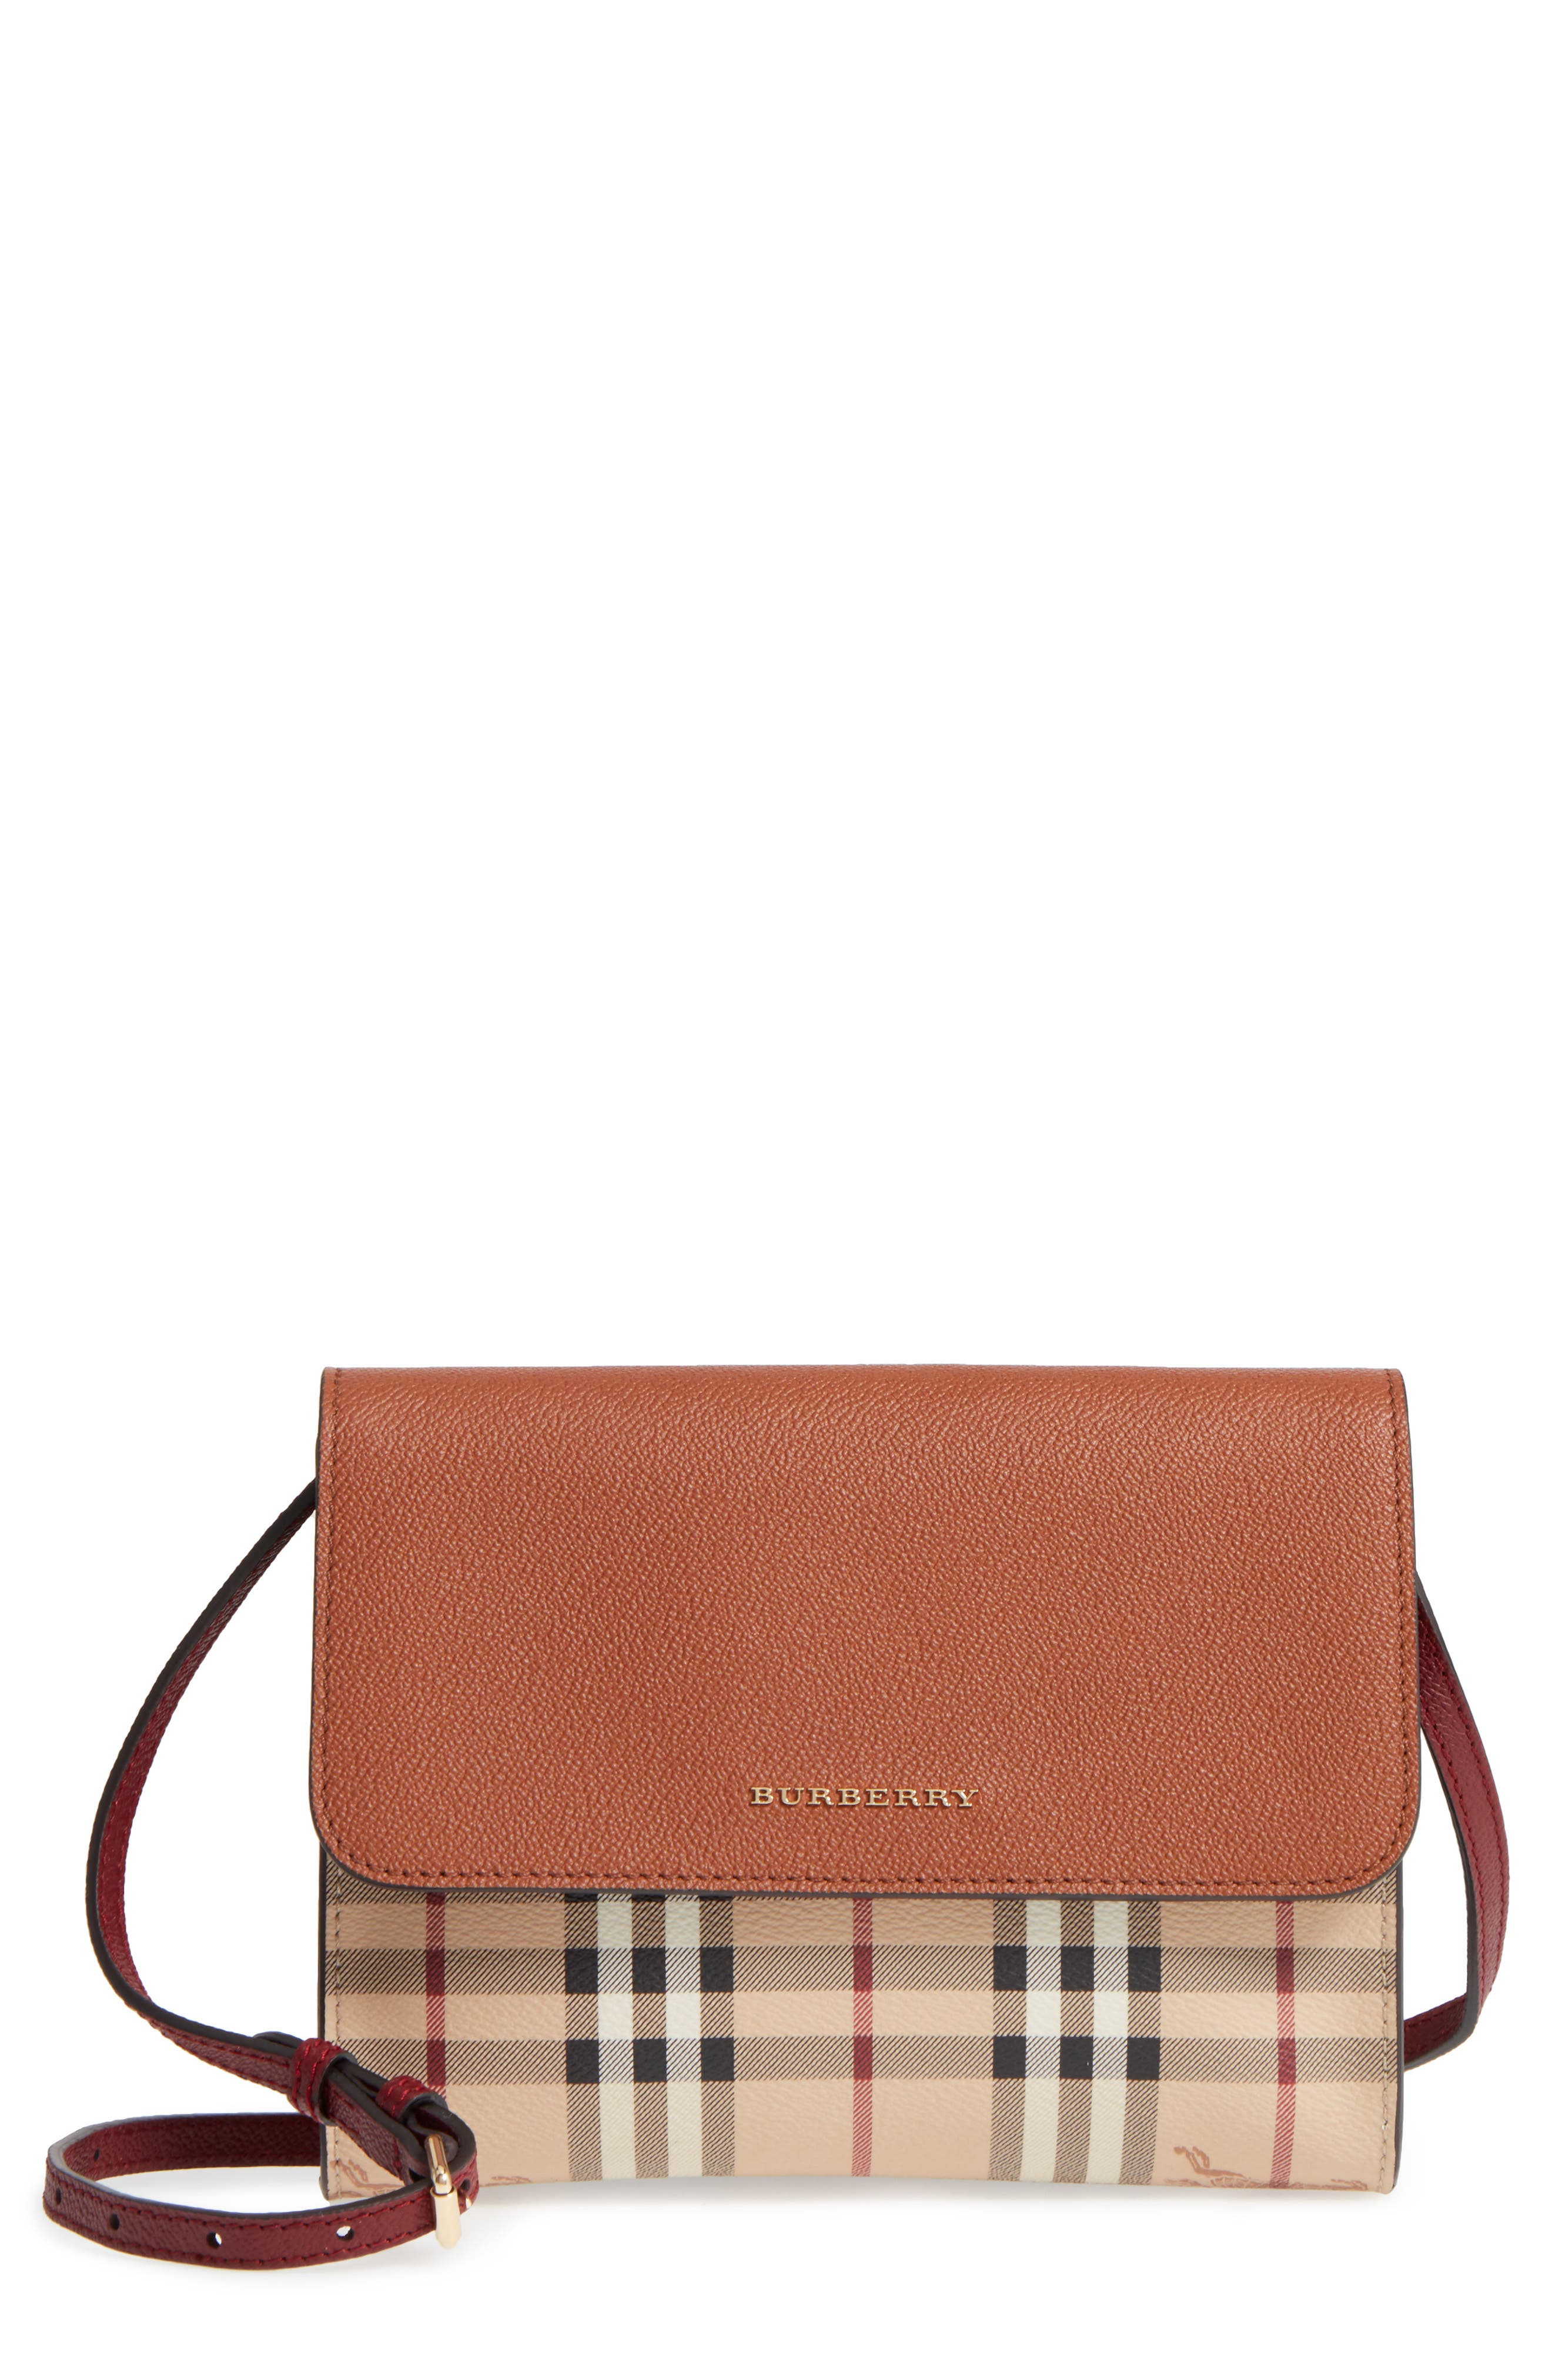 Burberry Peyton Check Coated Canvas & Leather Crossbody Bag